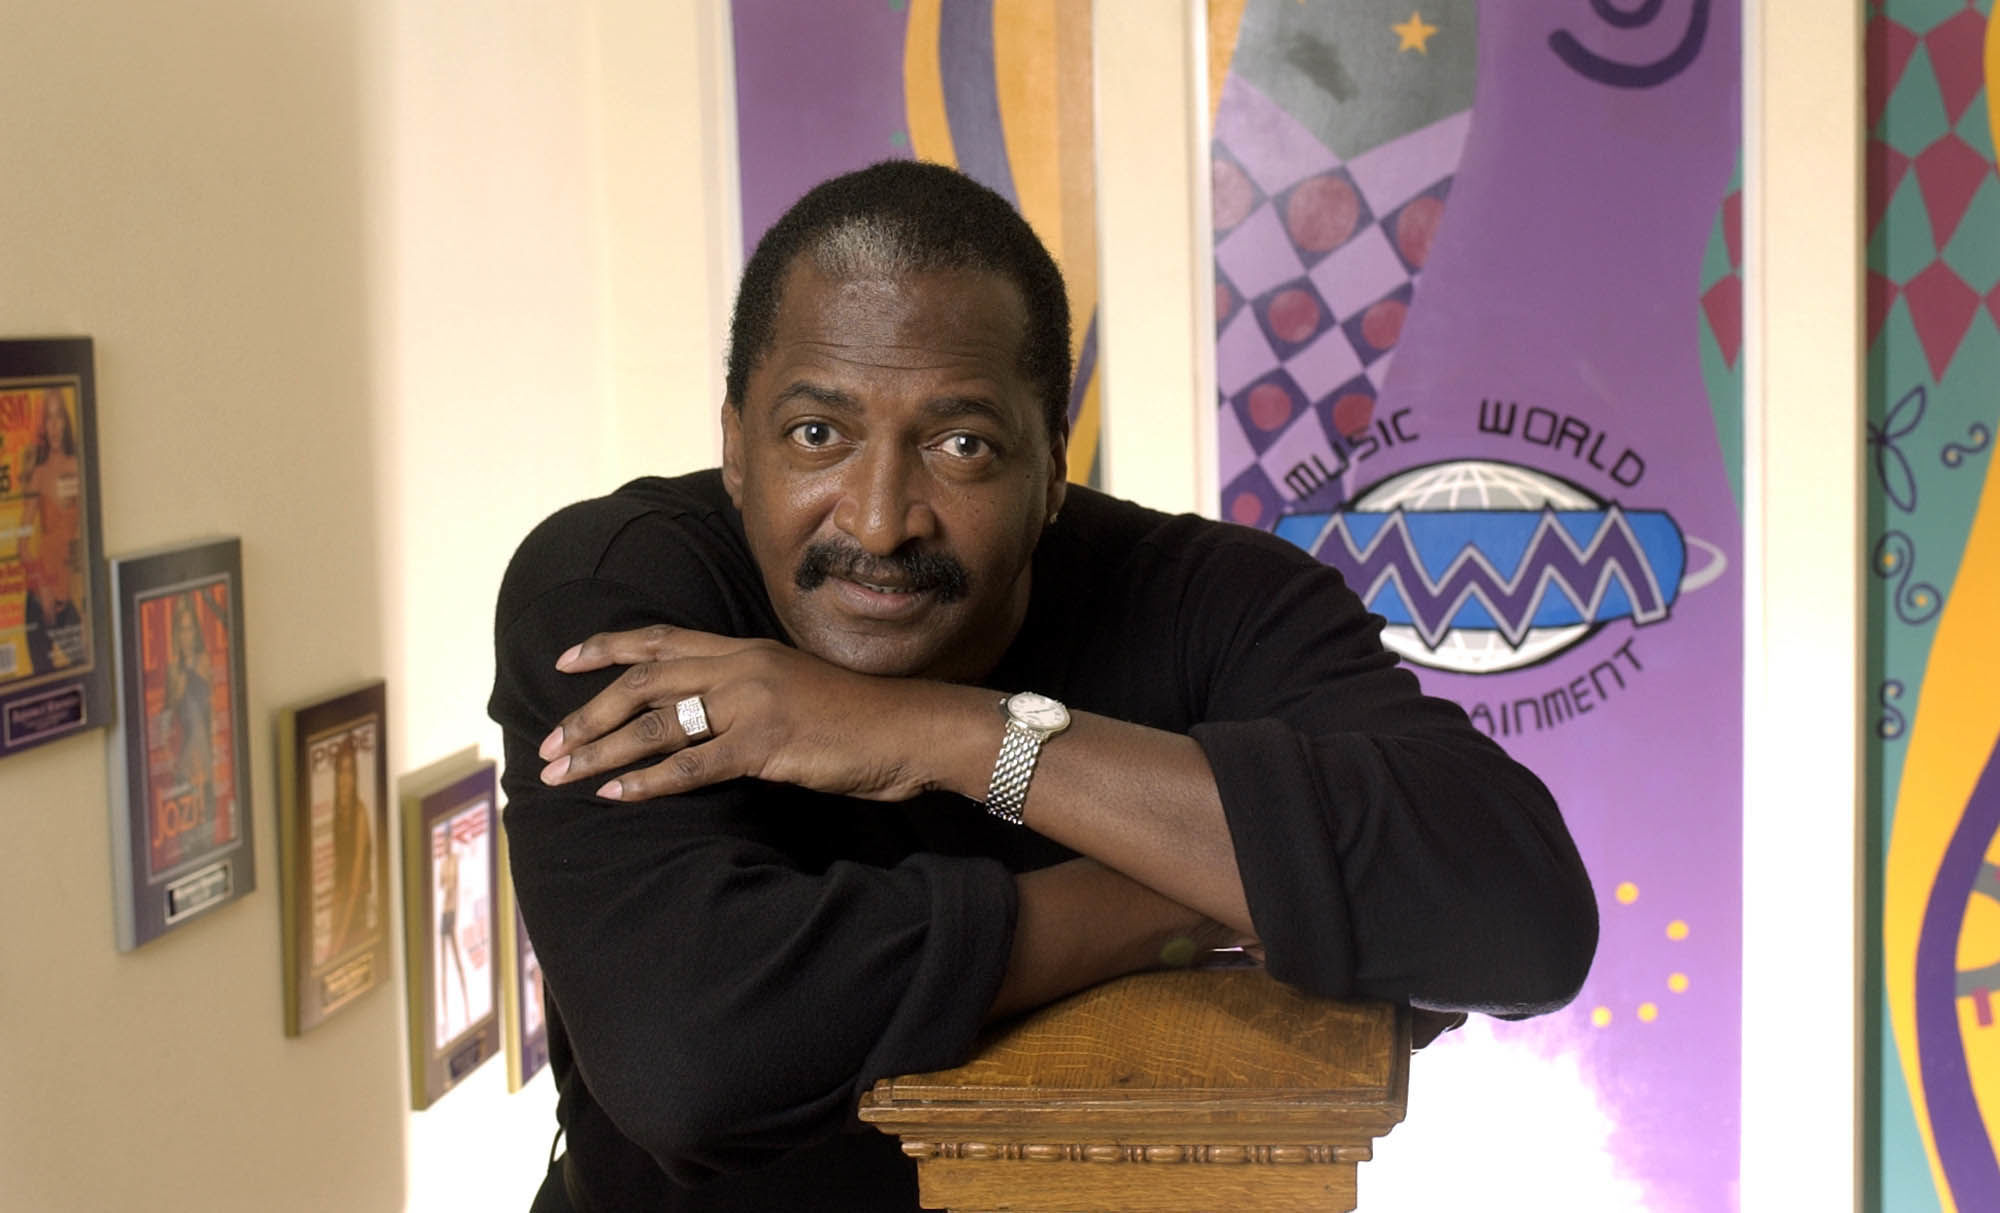 Matthew Knowles speaks on his recent diagnosis and treatment of breast cancer